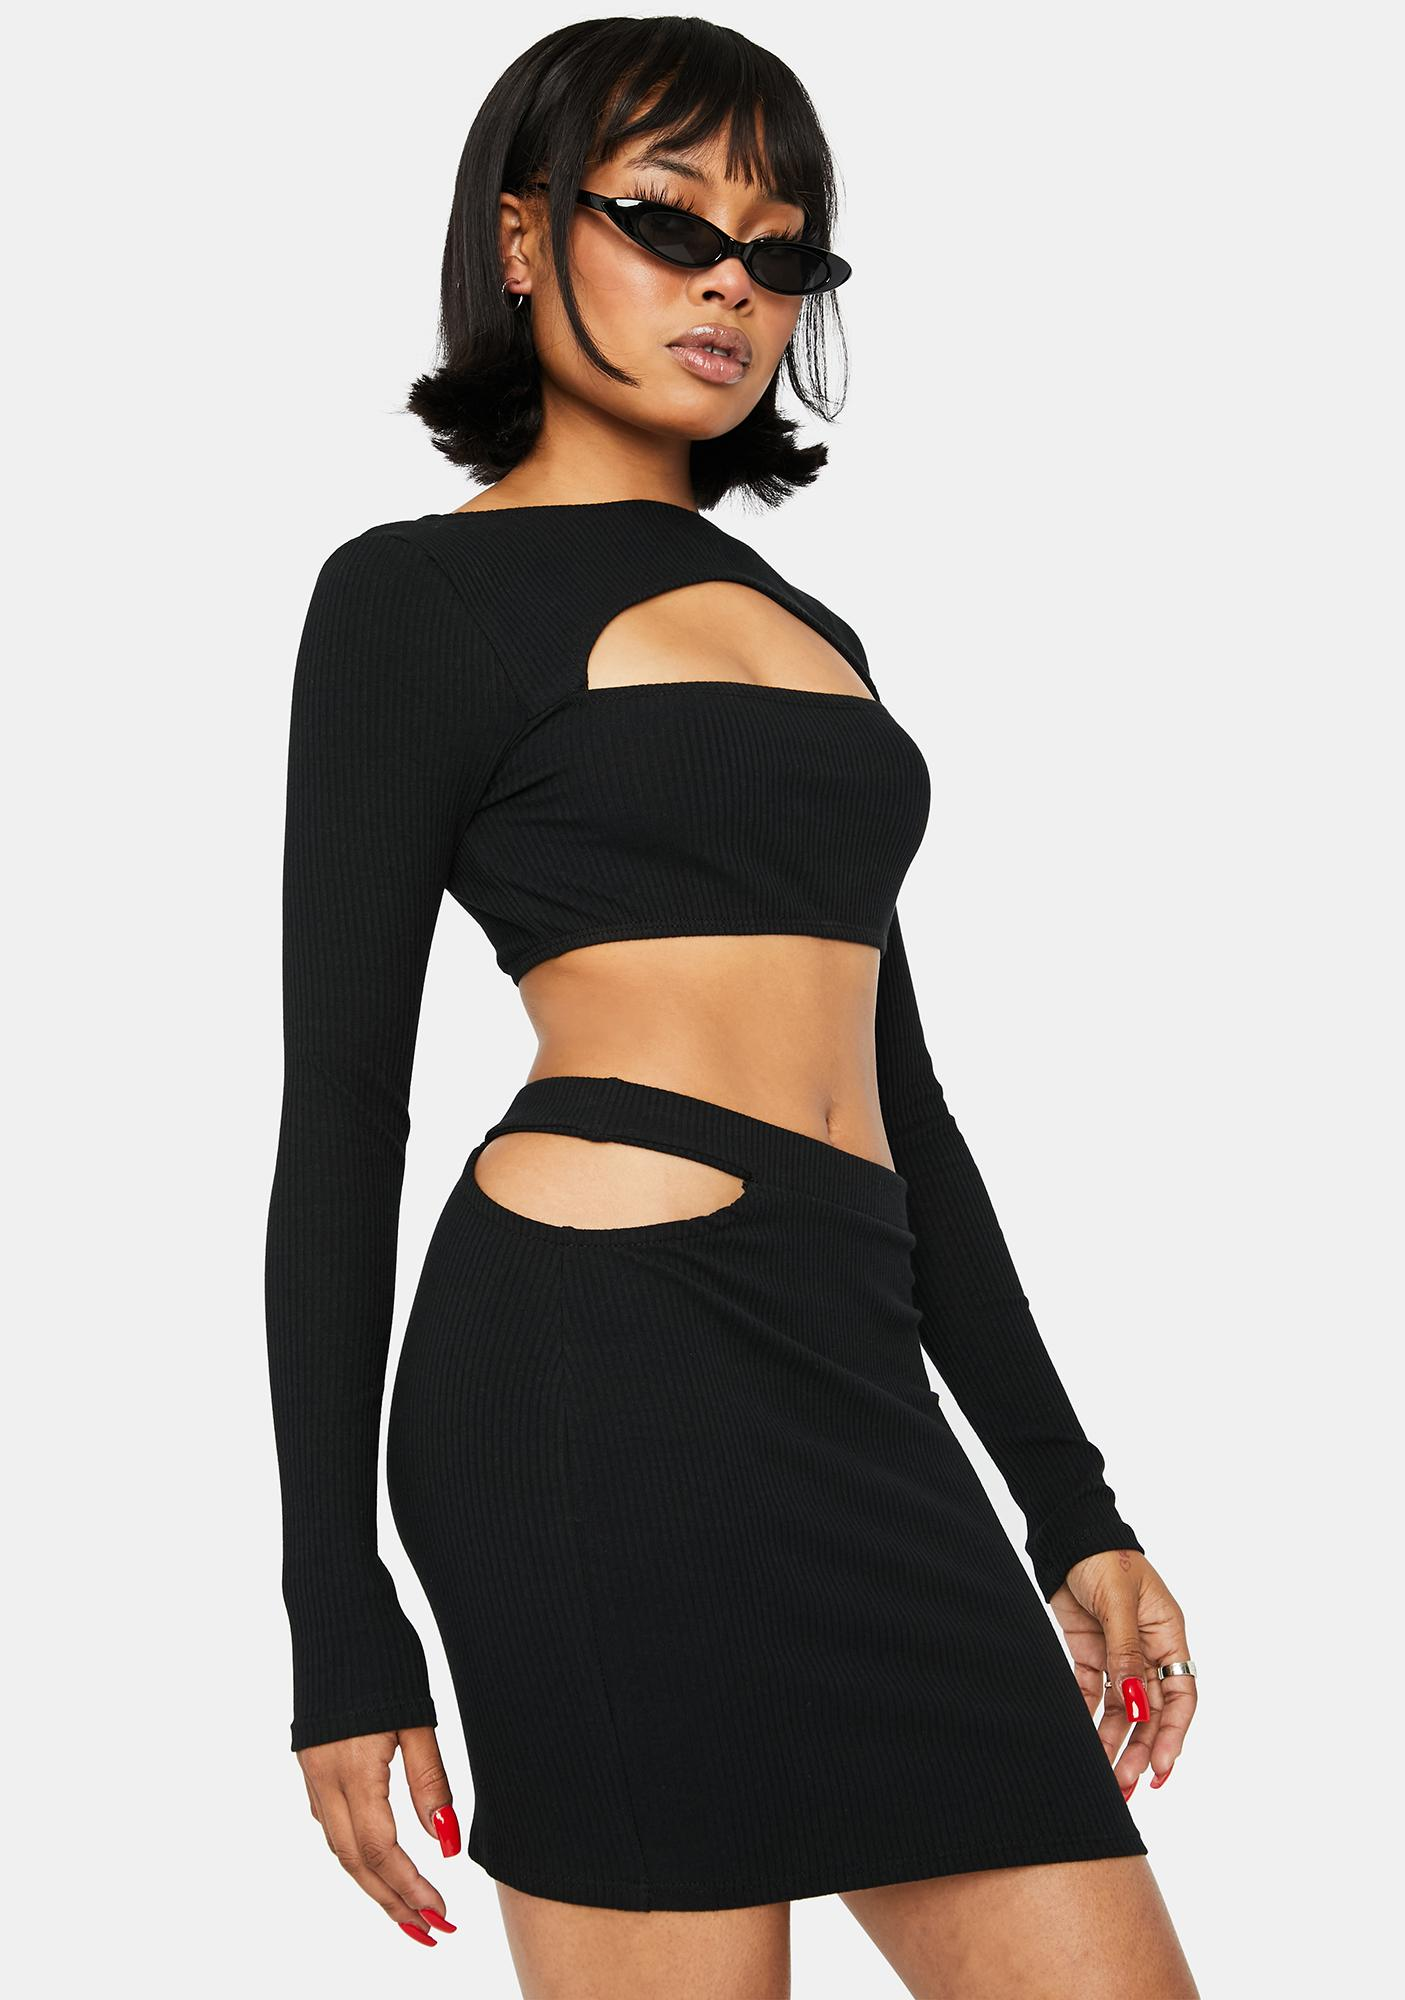 On Your Timeline Cut-Out Skirt Set